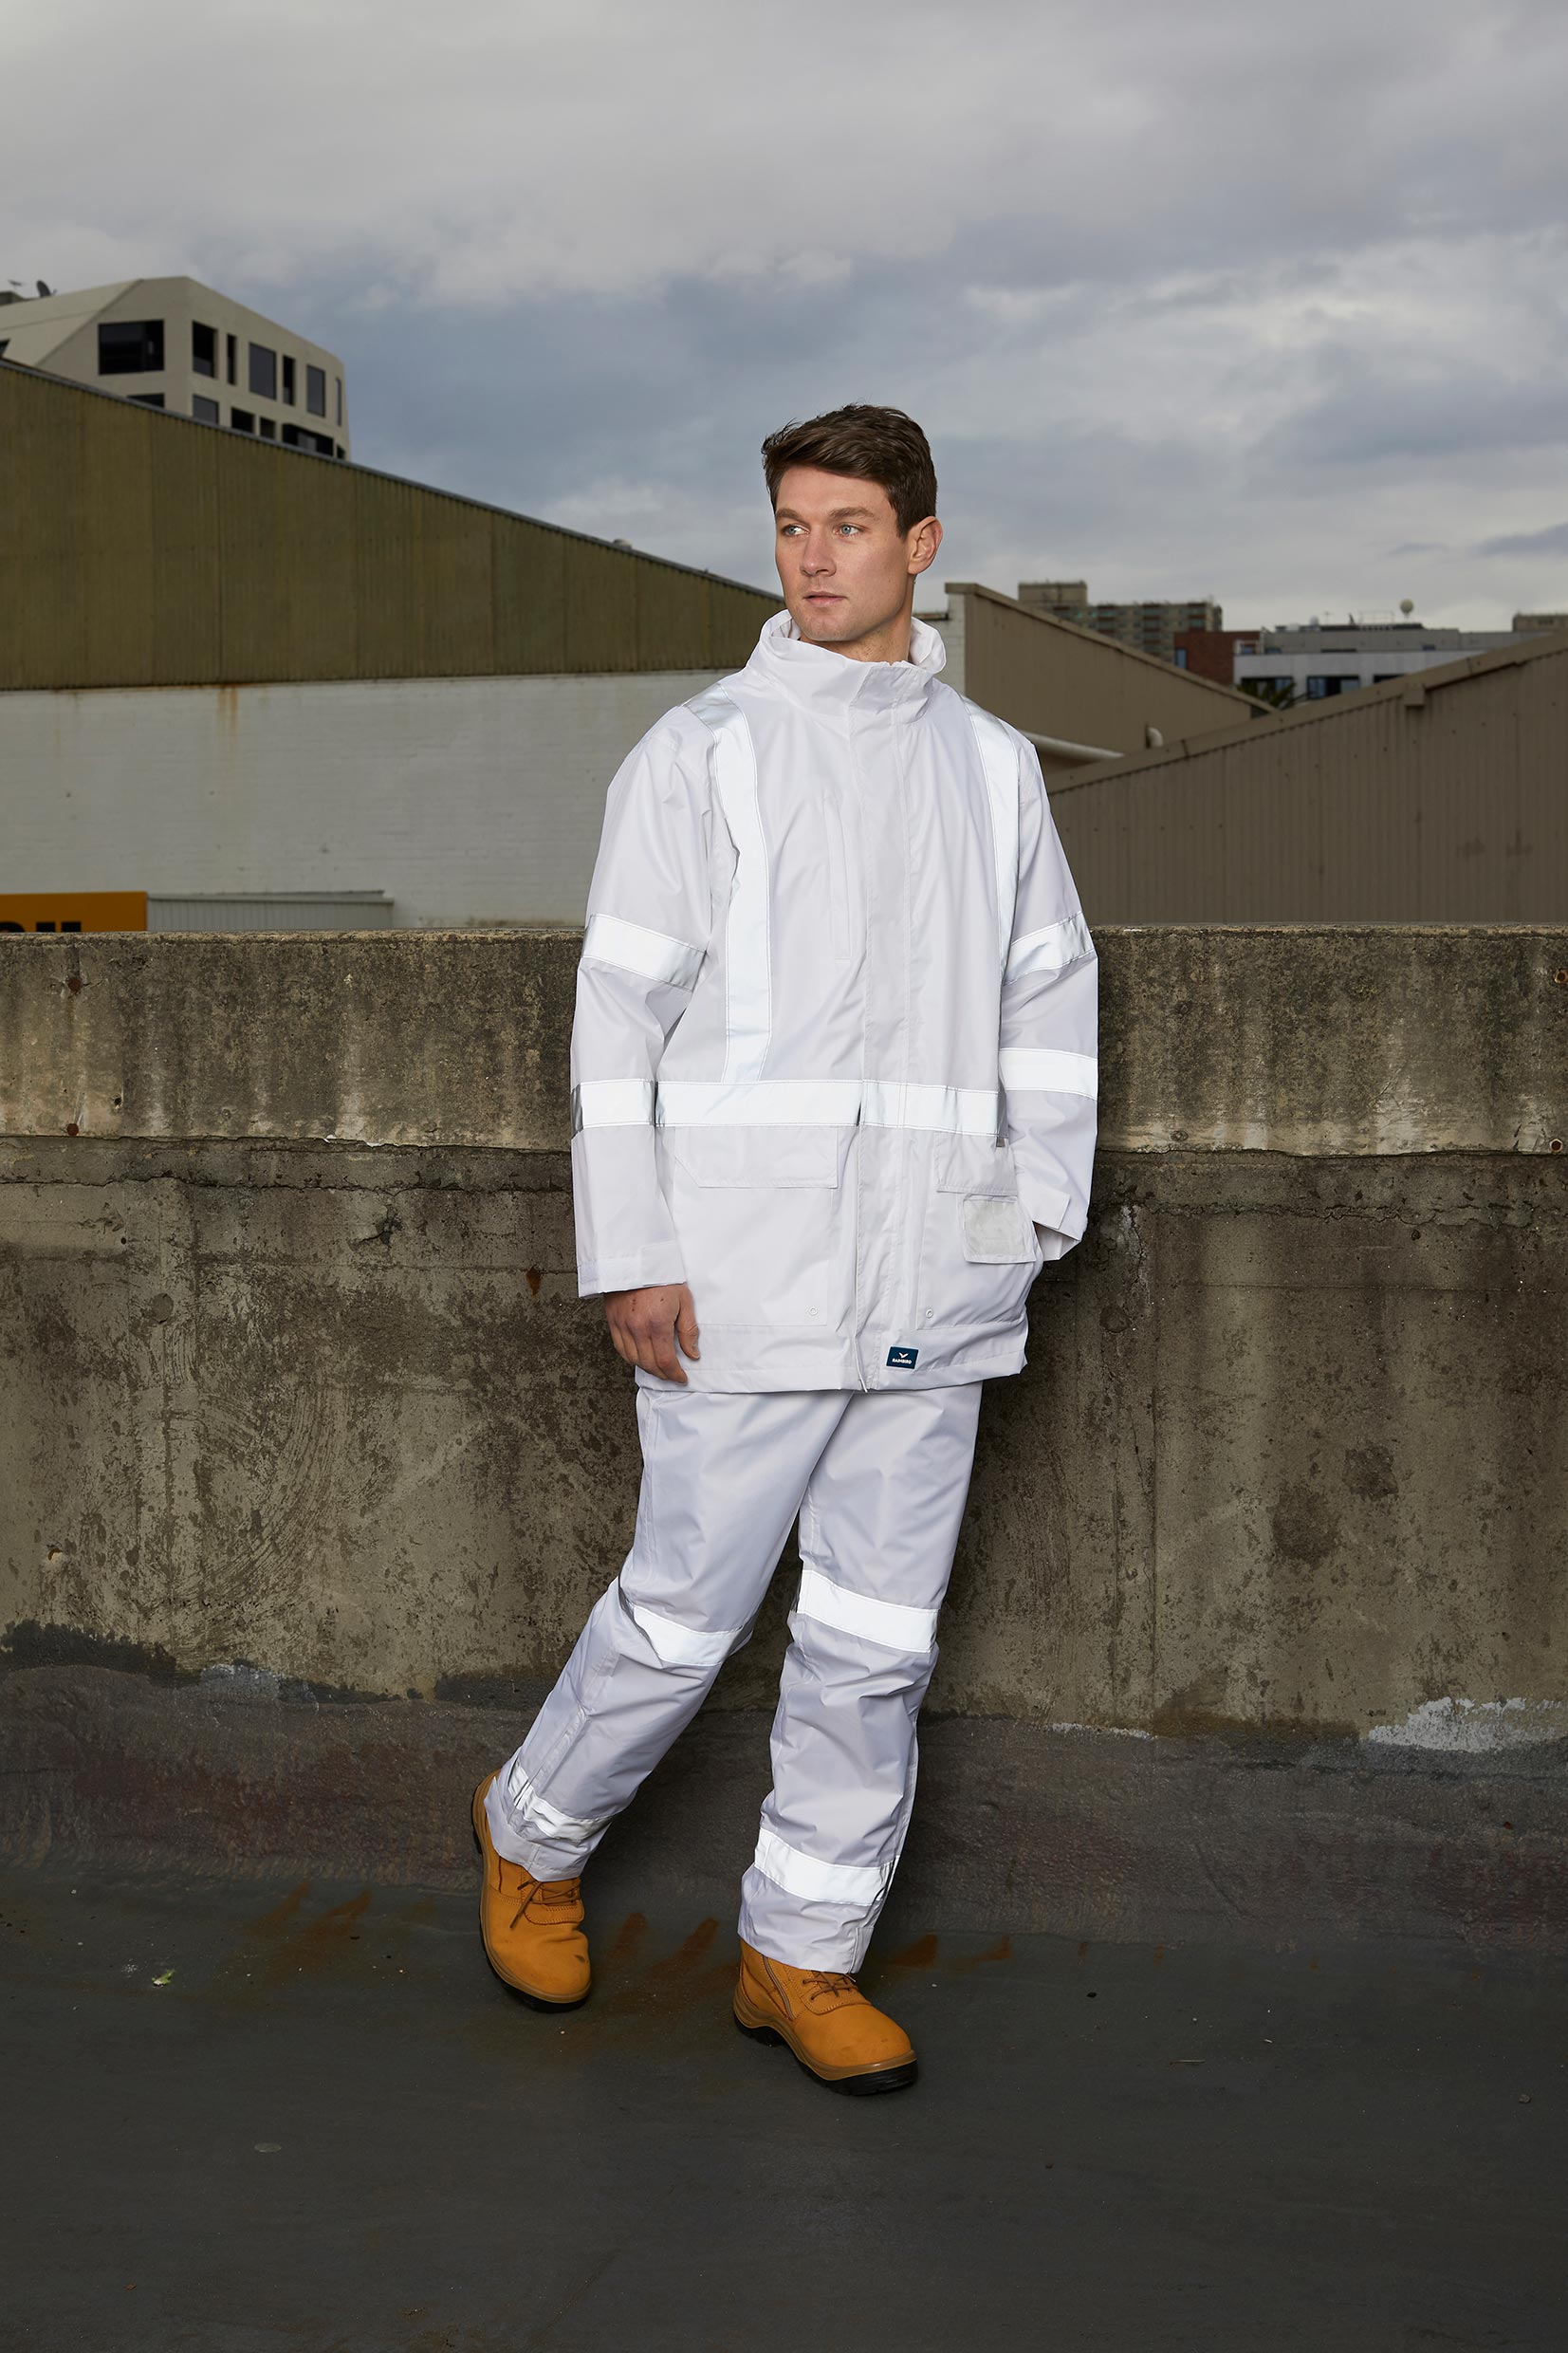 ADULTS-NIGHT-VIS-JACKET-8622-+-ADULTS-NIGHT-VIS-OVERPANT-8623--(2)